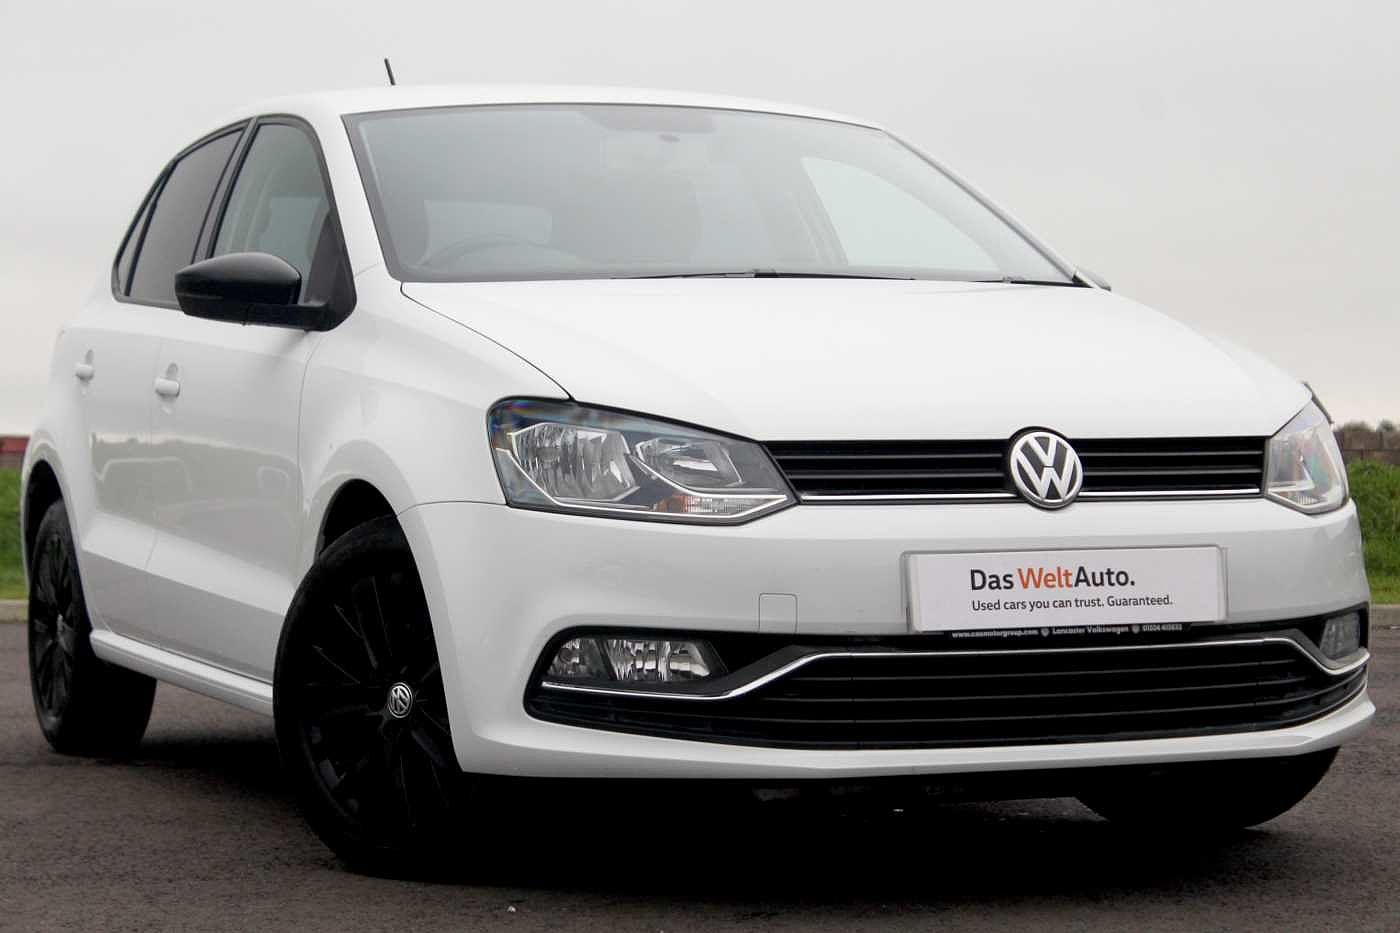 Volkswagen Polo 1.0 SE (60 PS) BMT 5-Dr